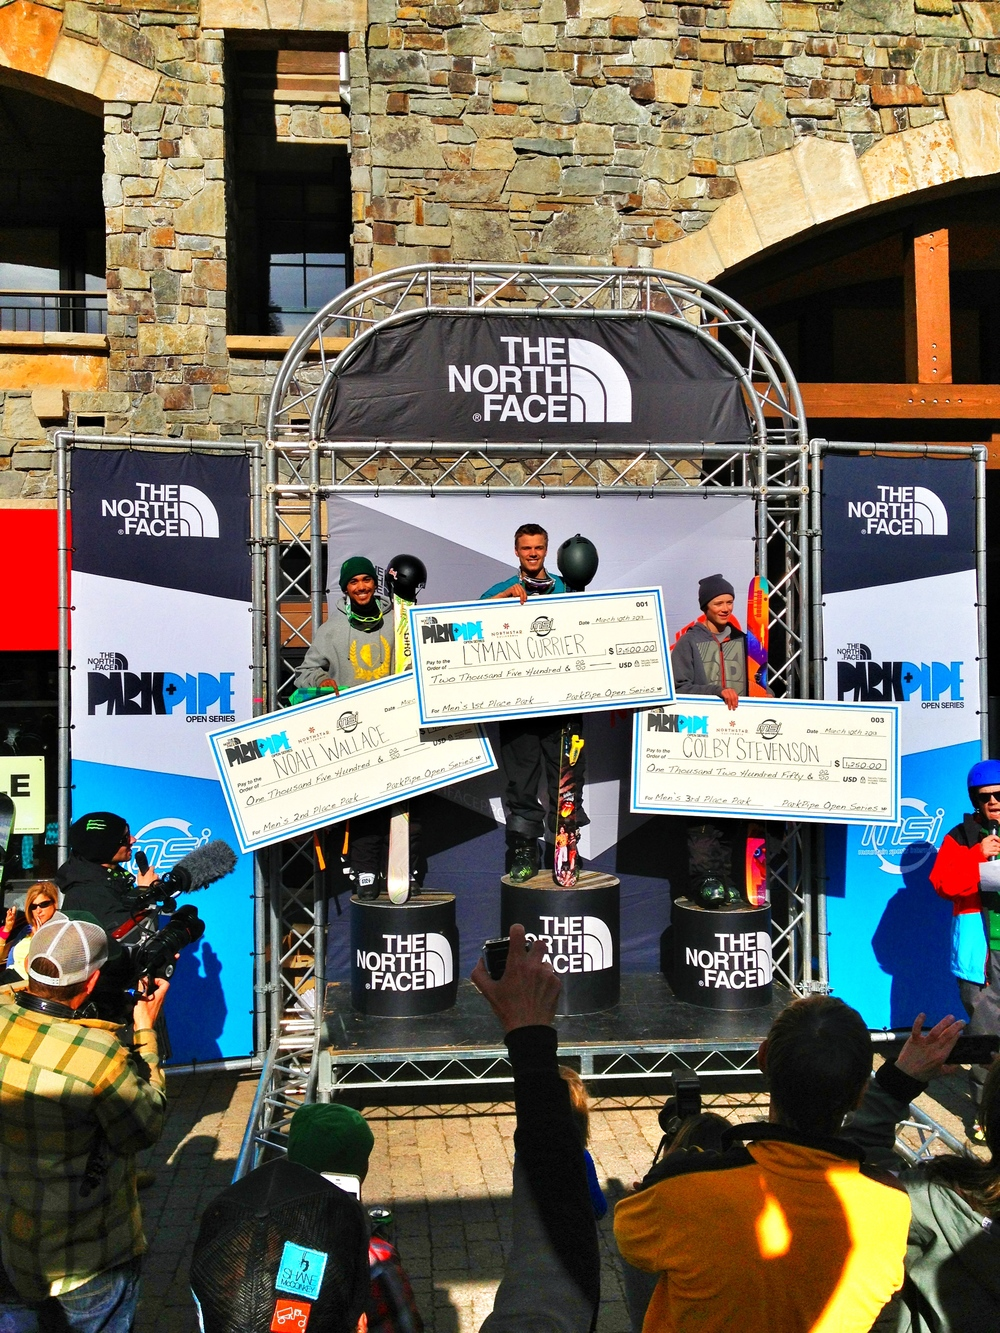 Podium at the Northface Open